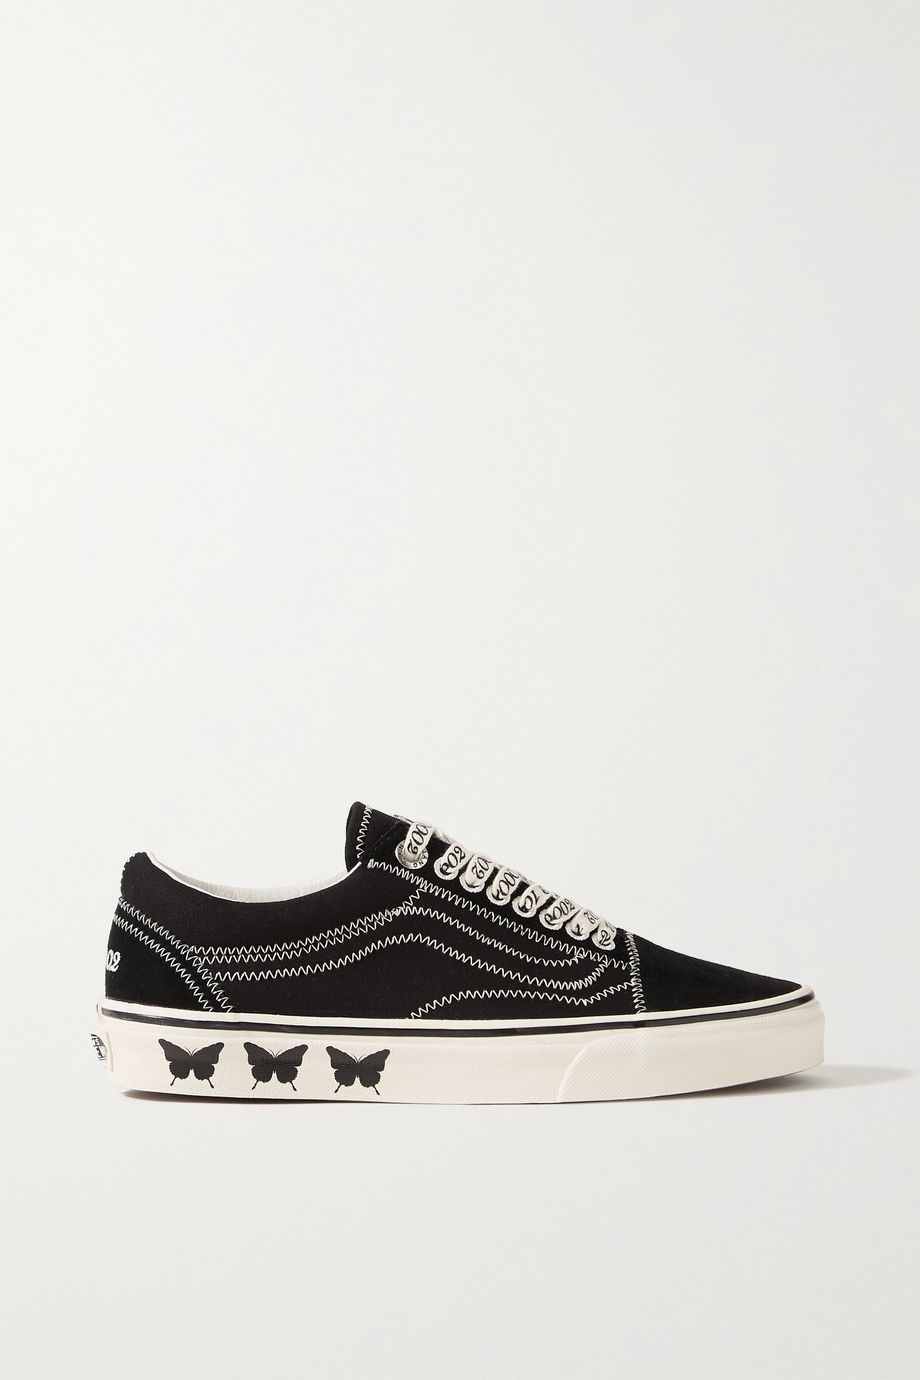 Vans + Sandy Liang Old Skool embroidered printed canvas and suede sneakers